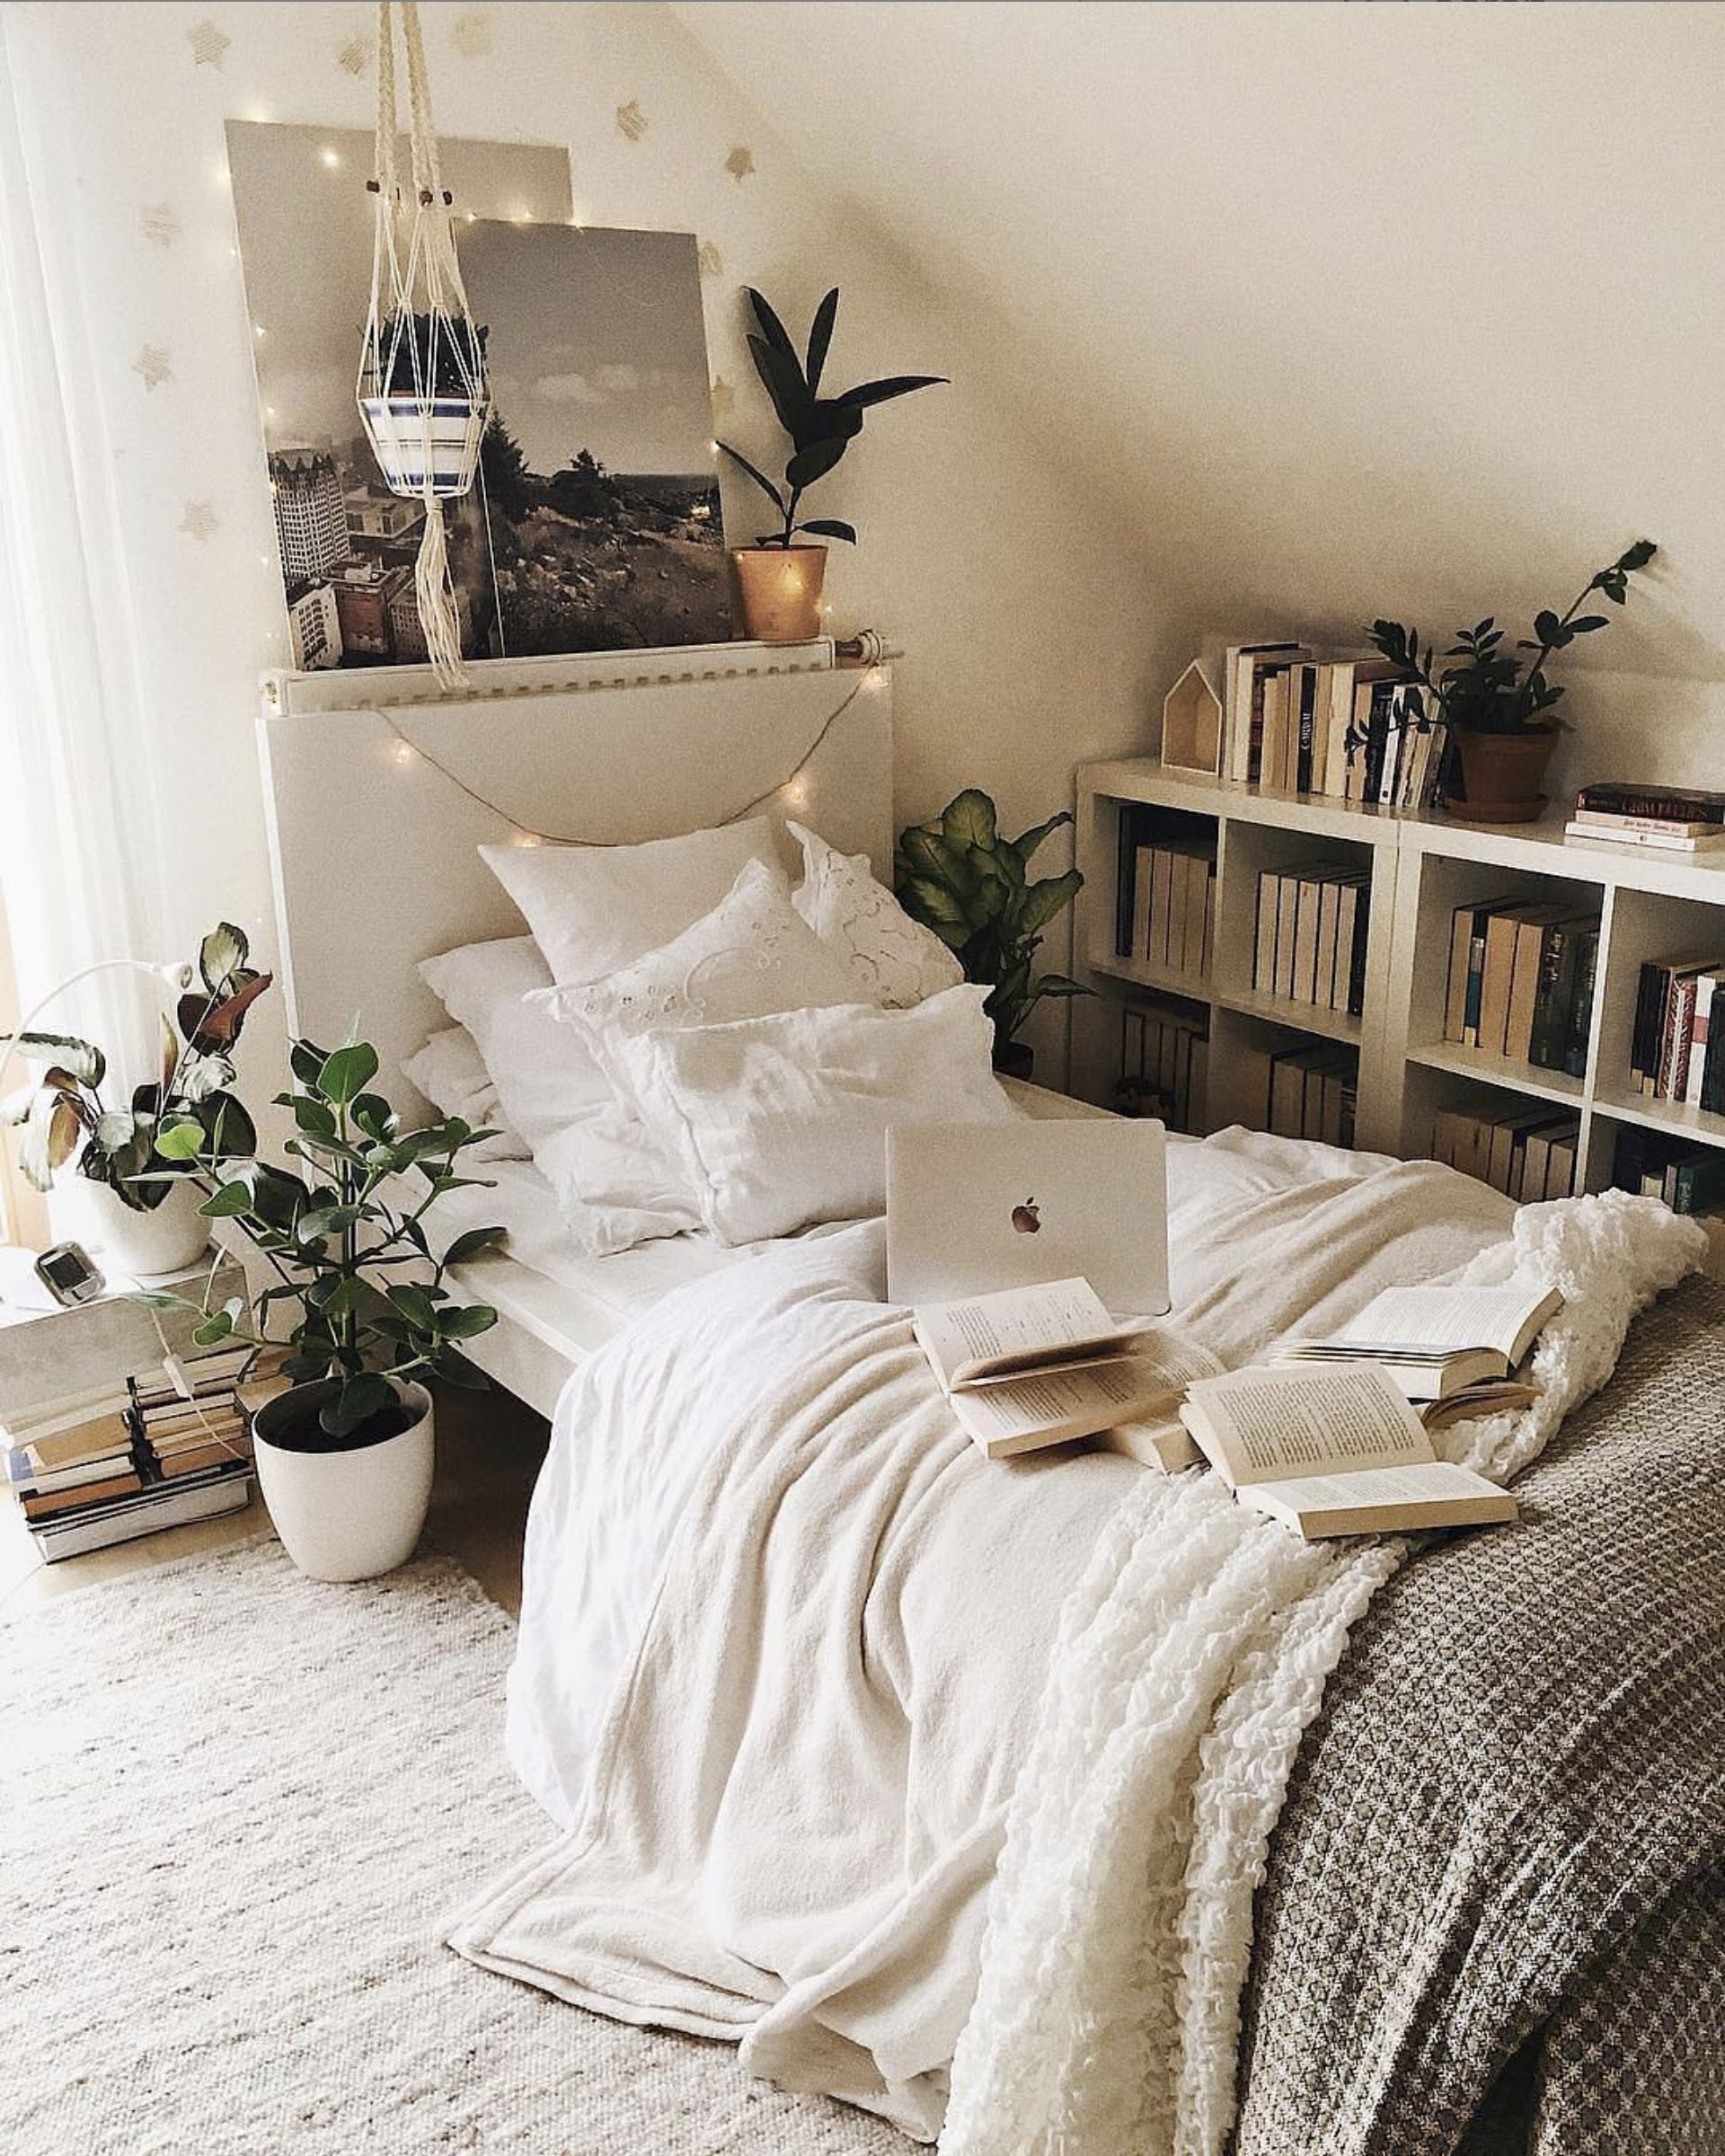 Simple White Bedroom Cozy Small Bedrooms Small Bedroom Decor Small Room Bedroom